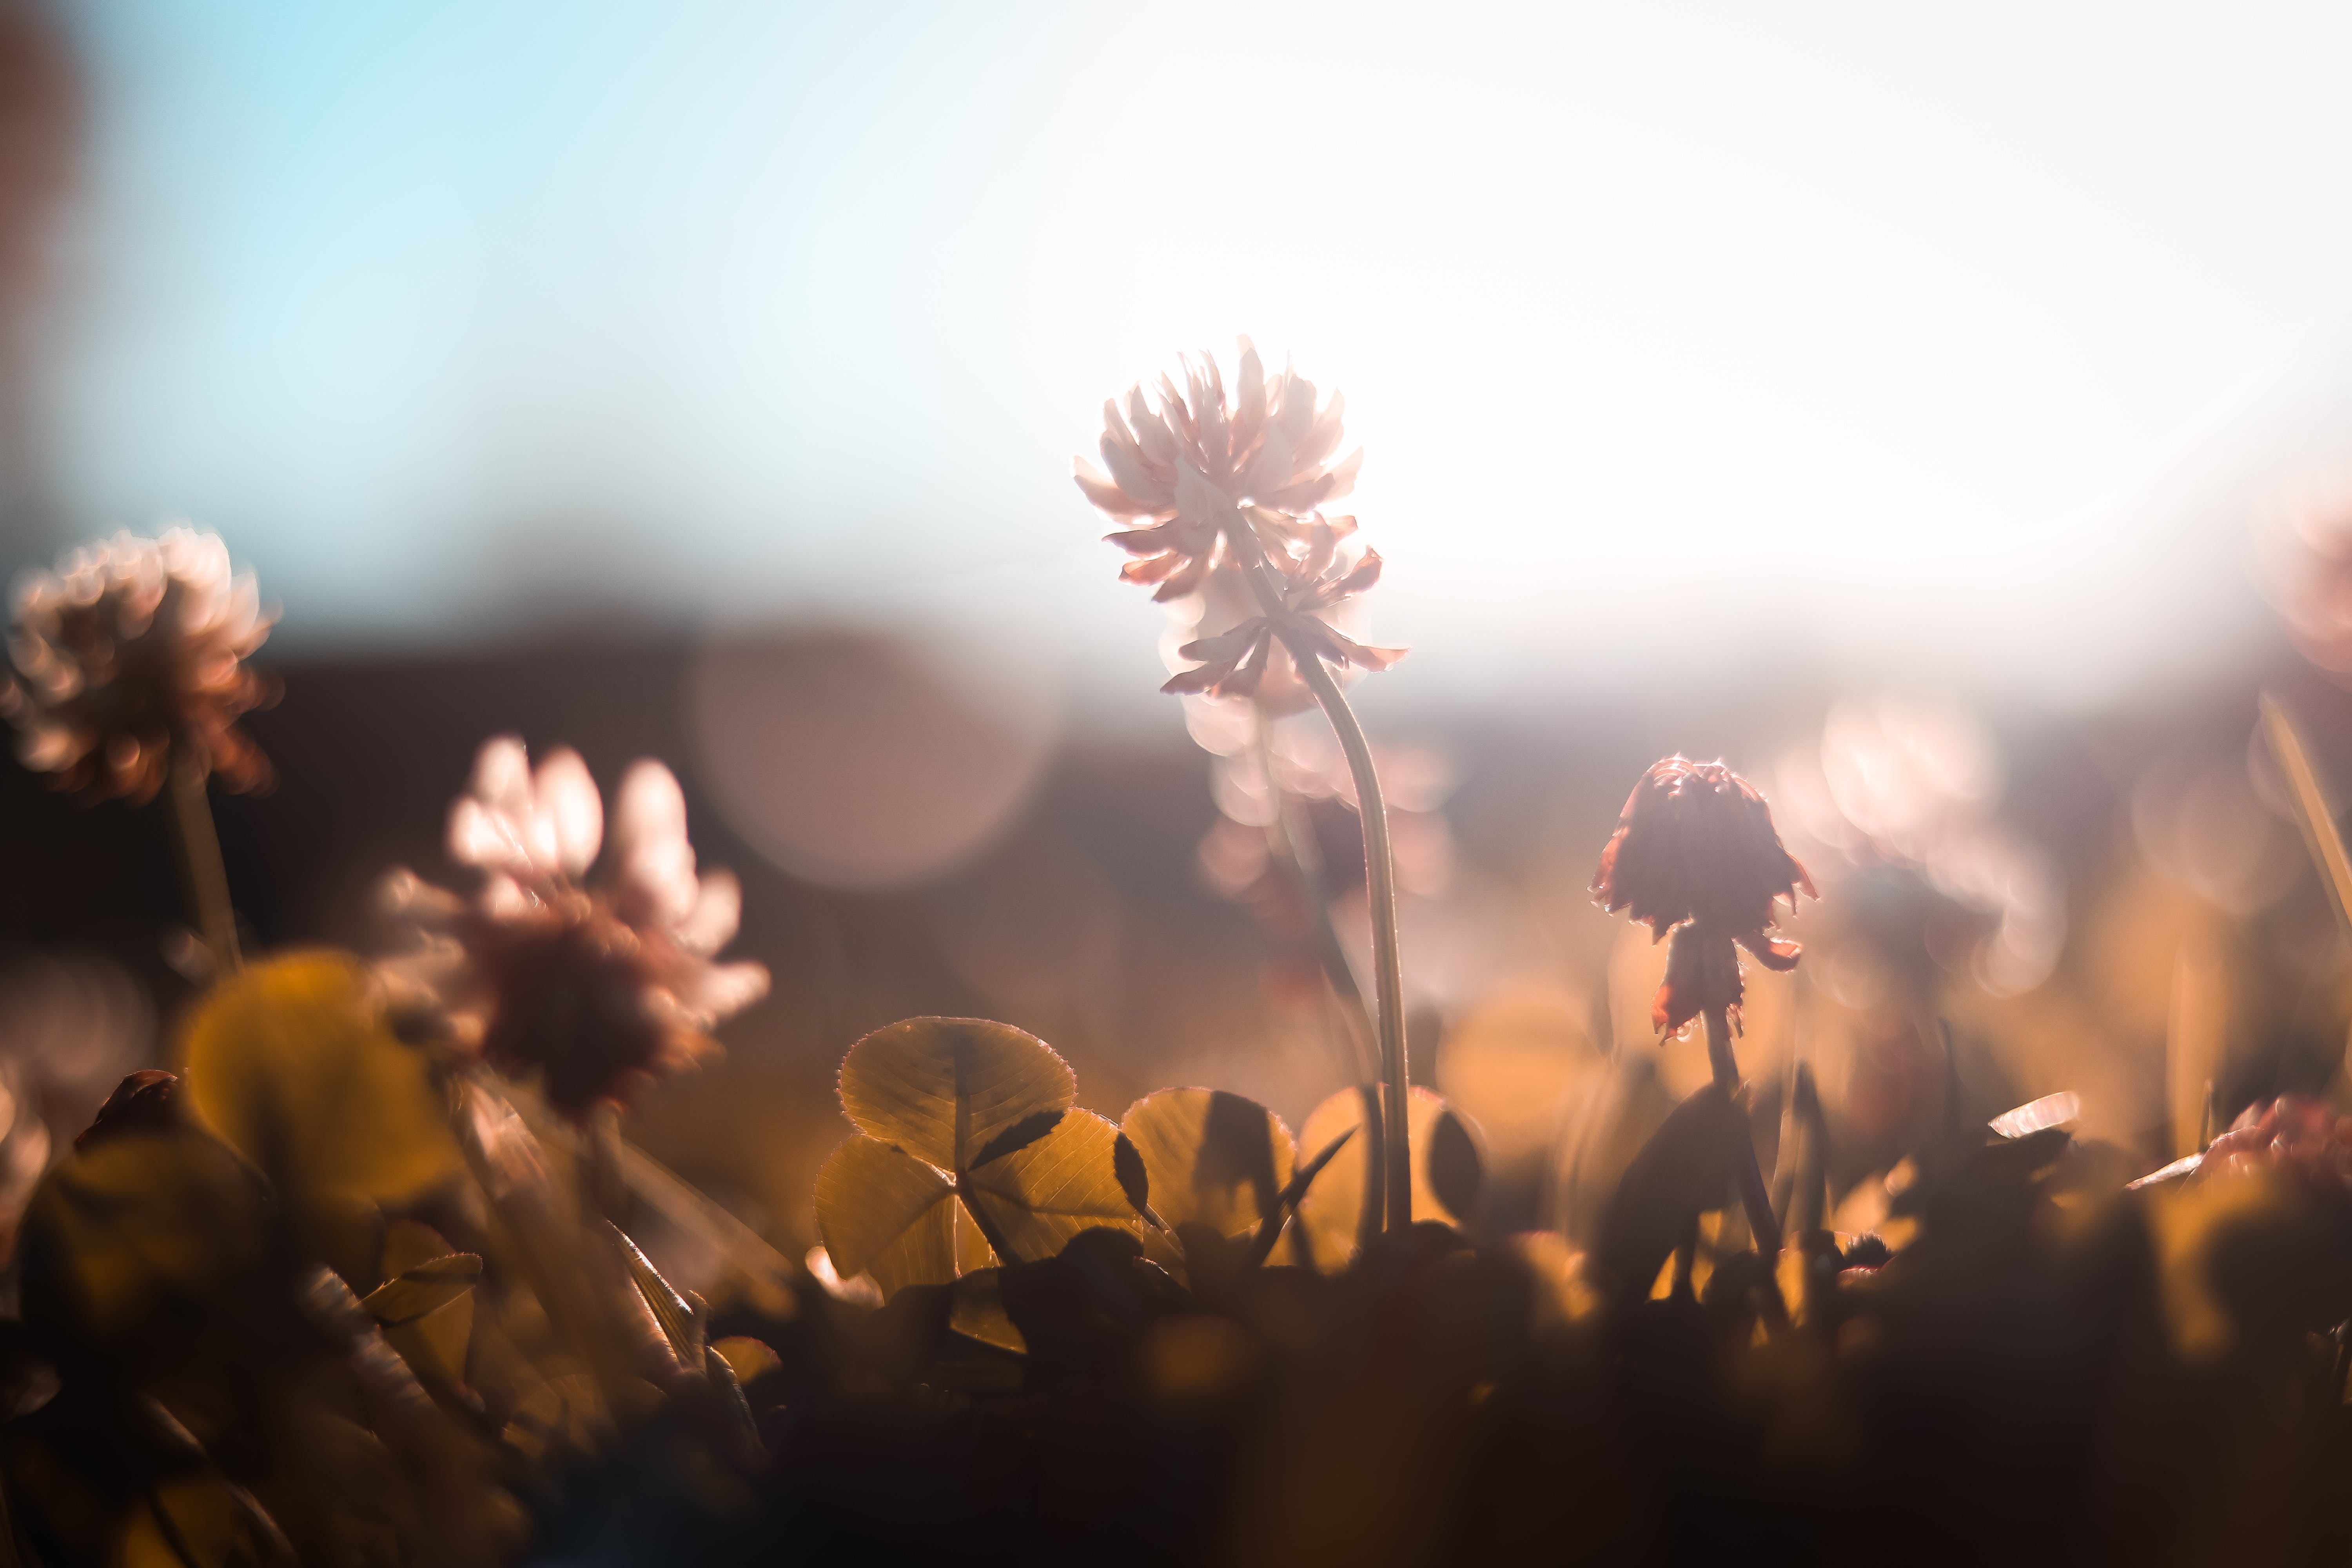 Selective Focus Photography of Flower Under Sunlight